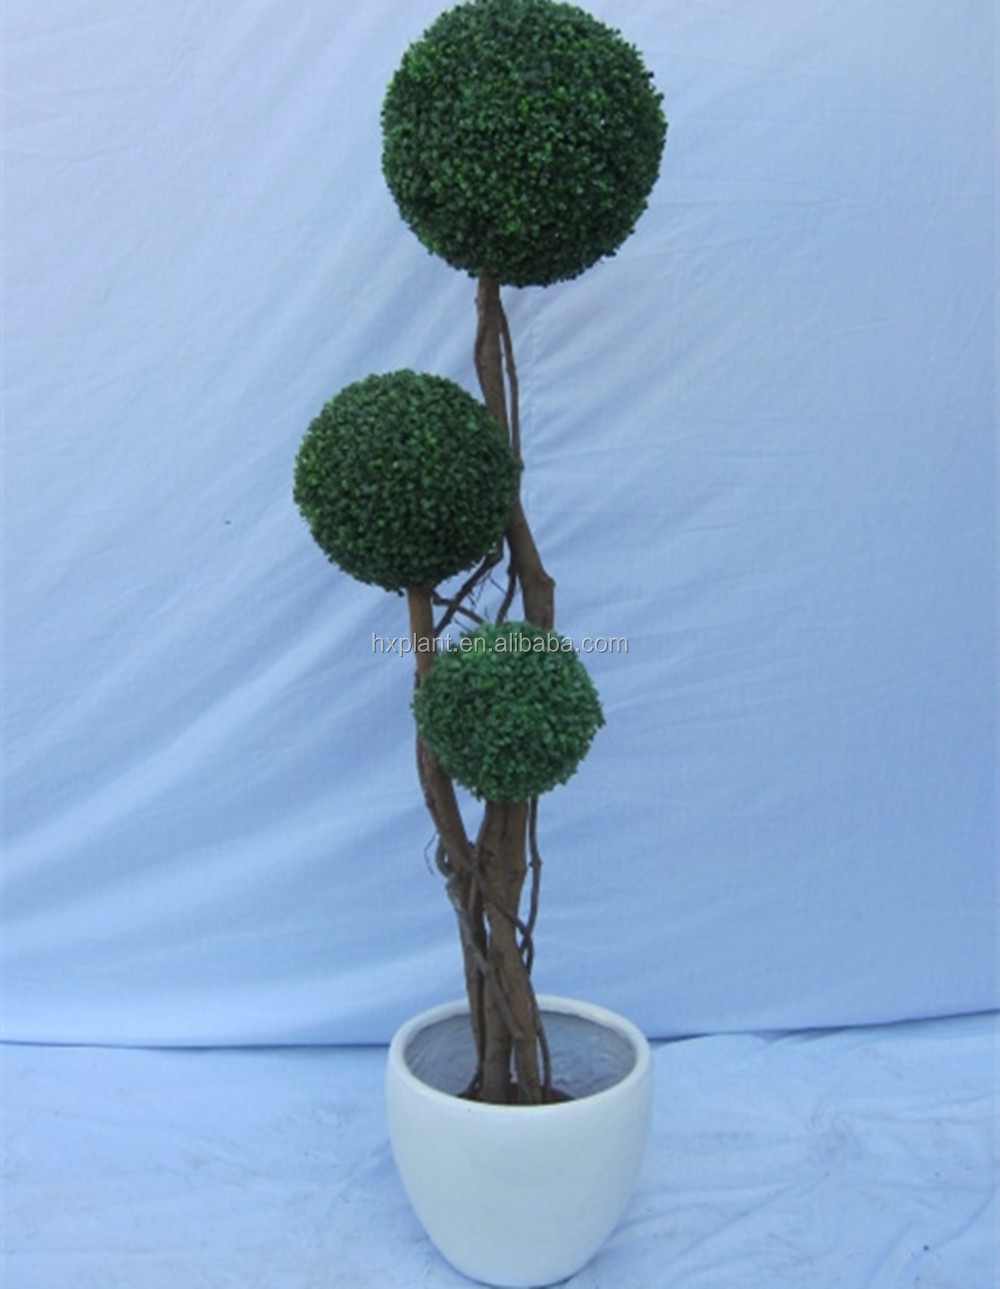 Wholesales Artificial Boxwood Spiral Indoor Artificial Trees Spiral Topiary Tree Buy Artificial Trees Indoor Artificial Trees Spiral Topiary Tree Product On Alibaba Com